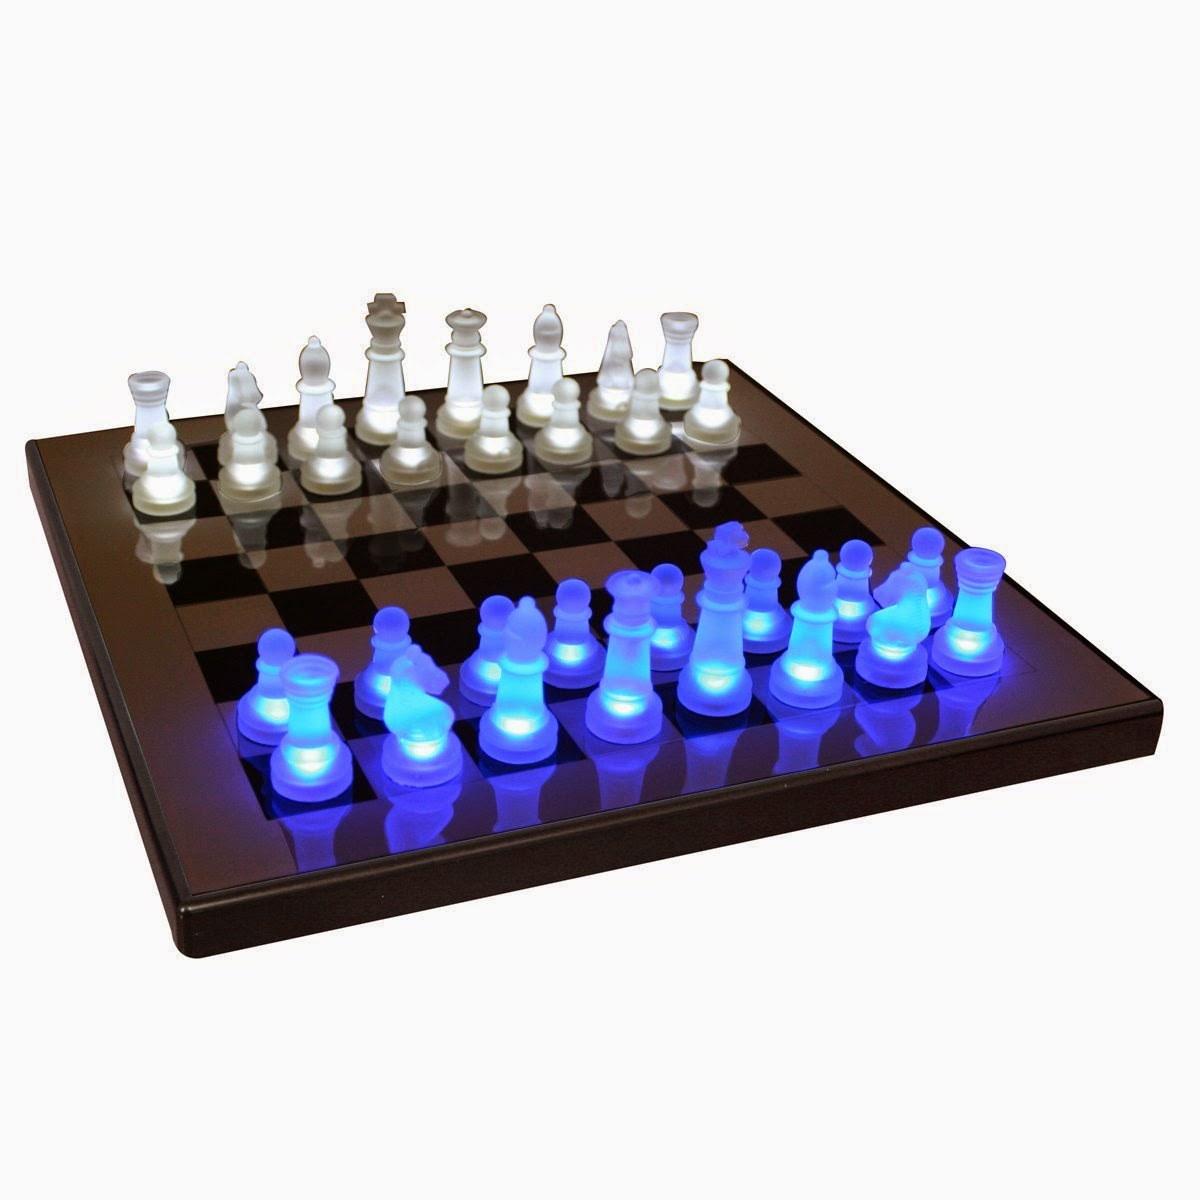 15 awesome and coolest chess sets part 4 - Coolest chess boards ...